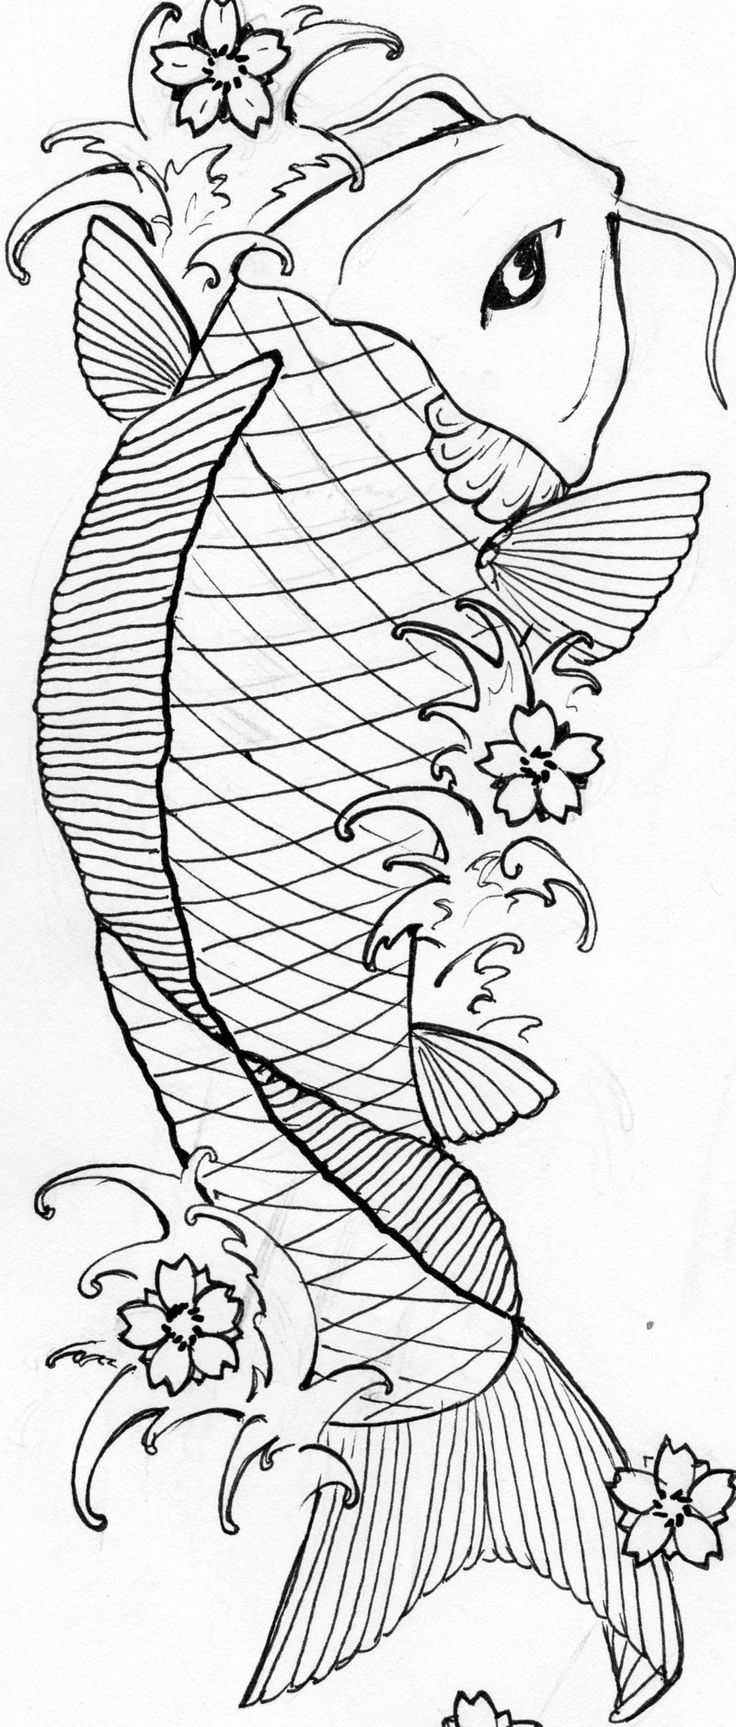 156 Best Images About Japanese Coloring Pages On Pinterest